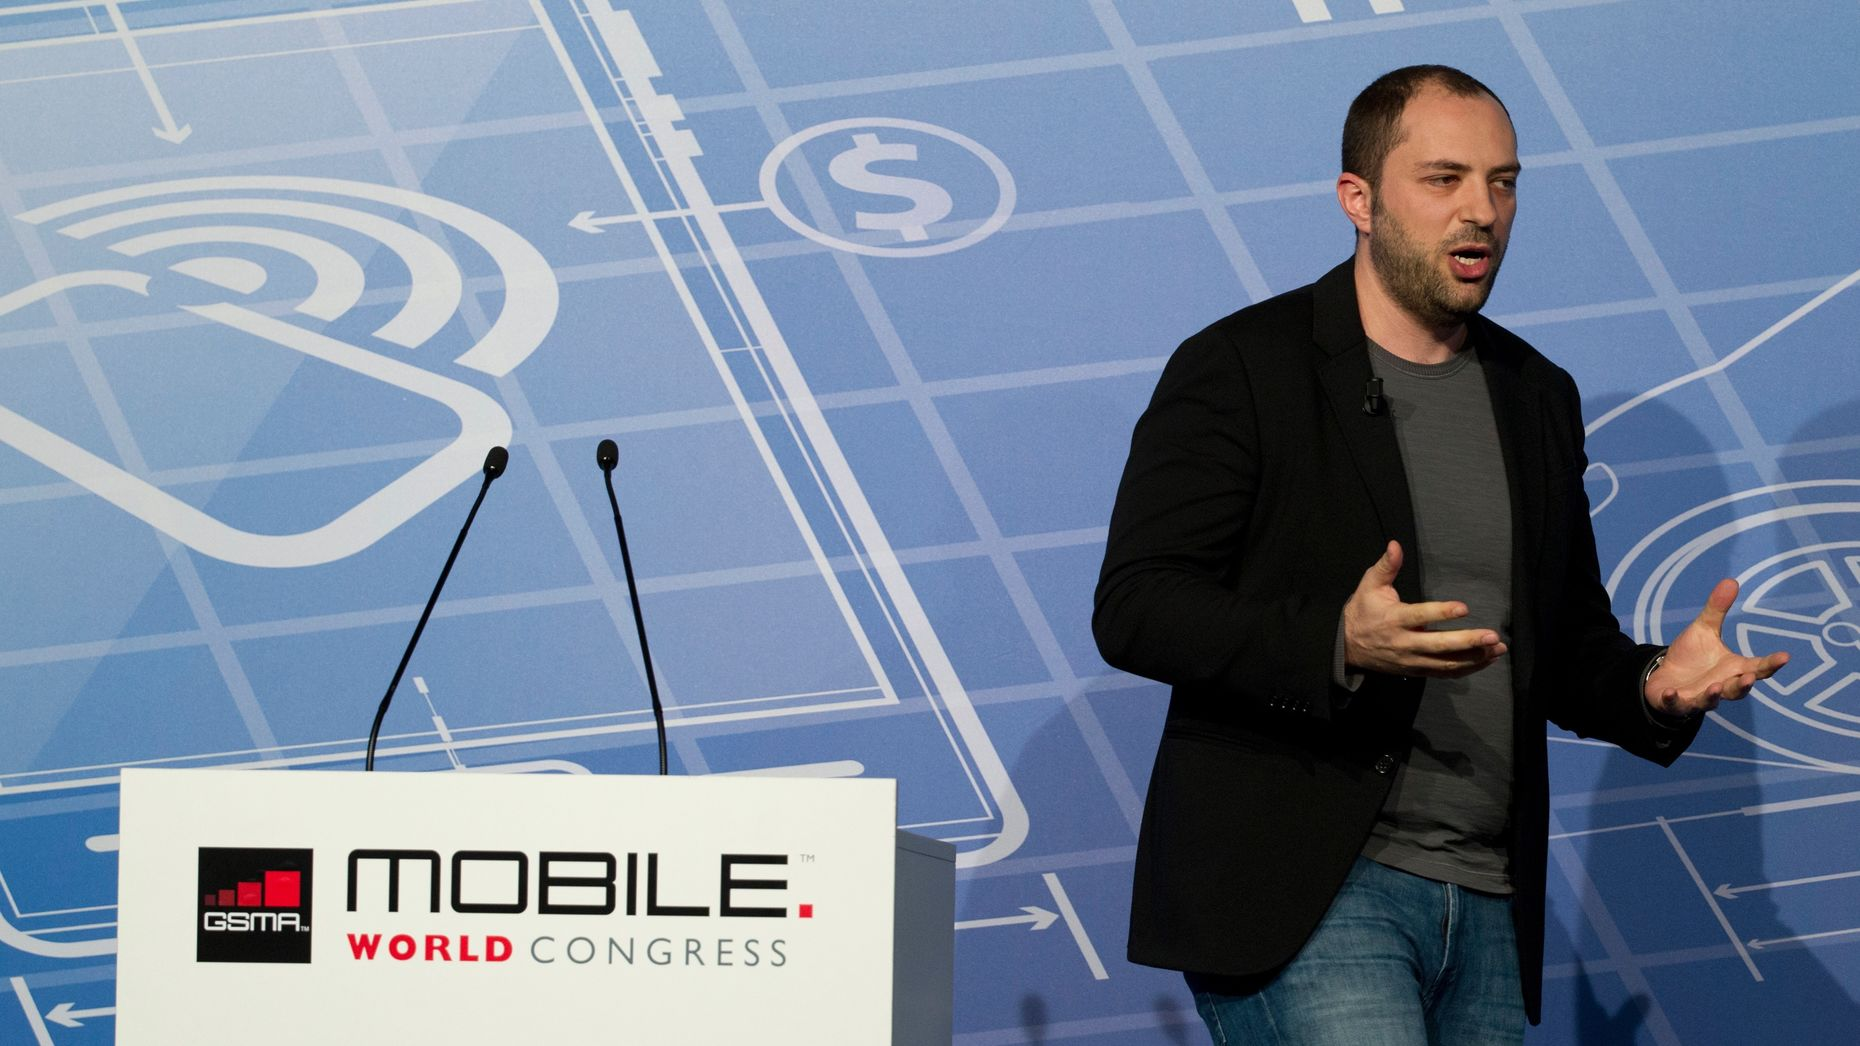 WhatsApp CEO Jan Koum. Photo by Bloomberg.